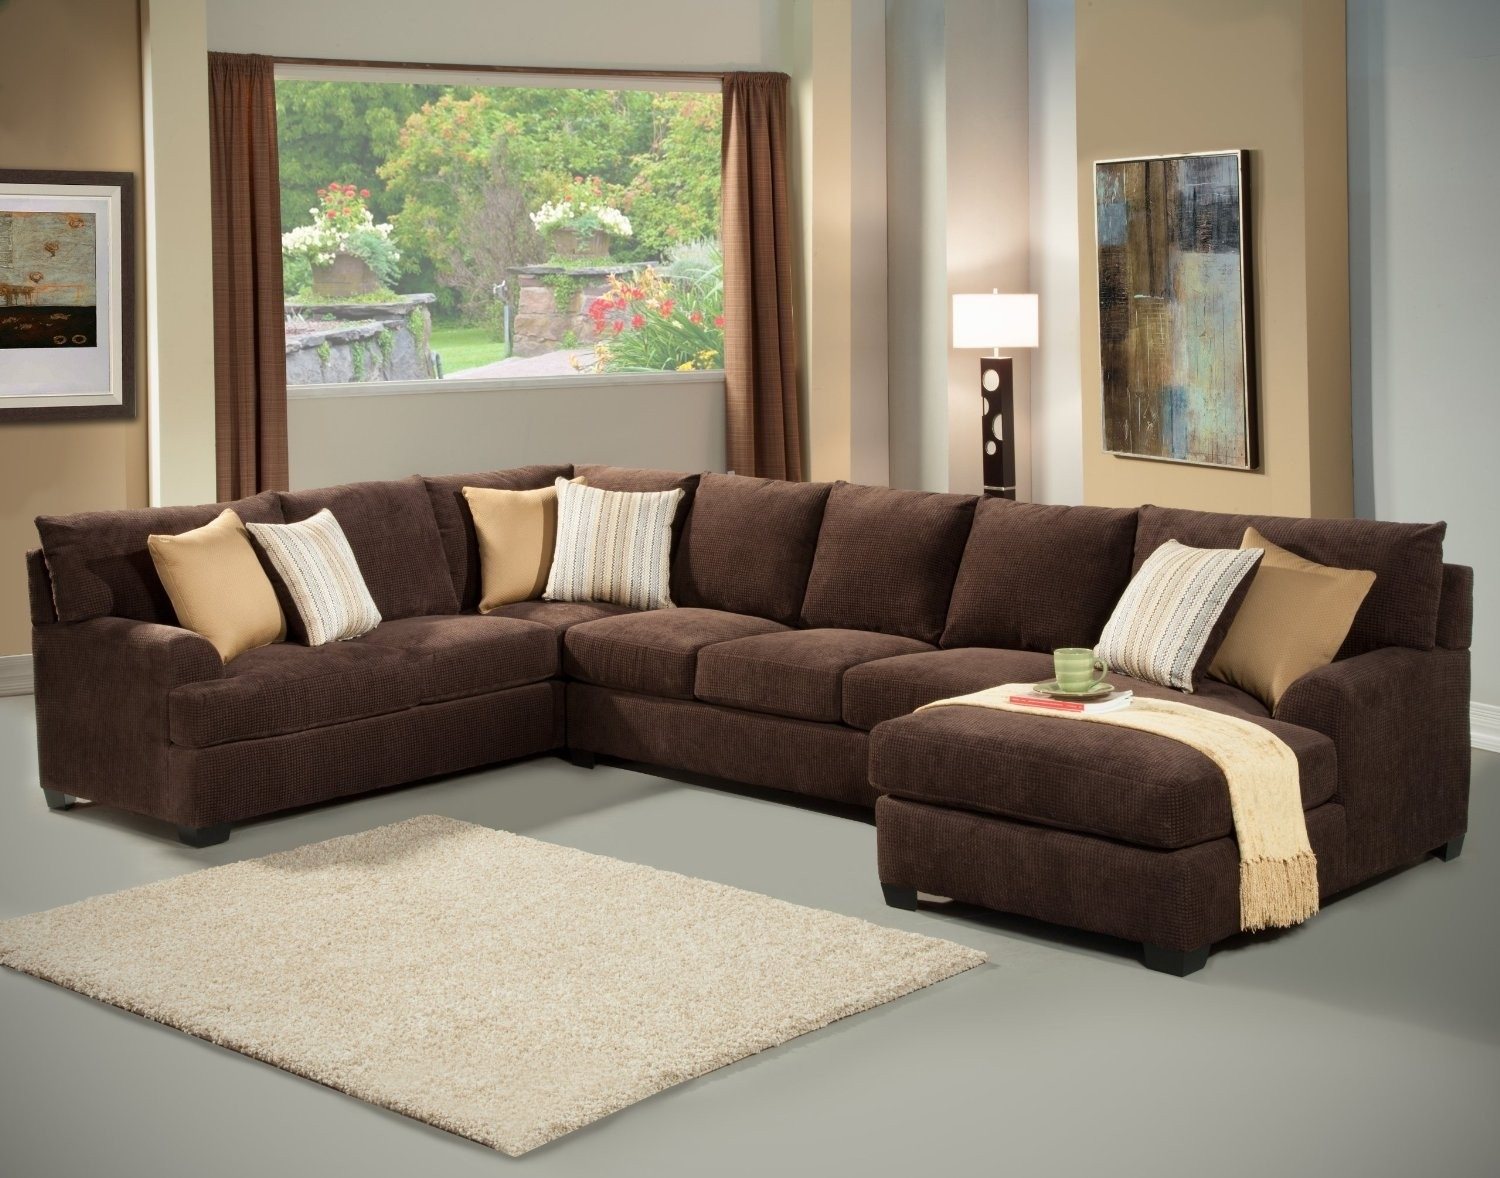 Unique Small Brown Sectional Sofa – Buildsimplehome Intended For Small Sectional Sofas With Chaise And Ottoman (Photo 9 of 10)